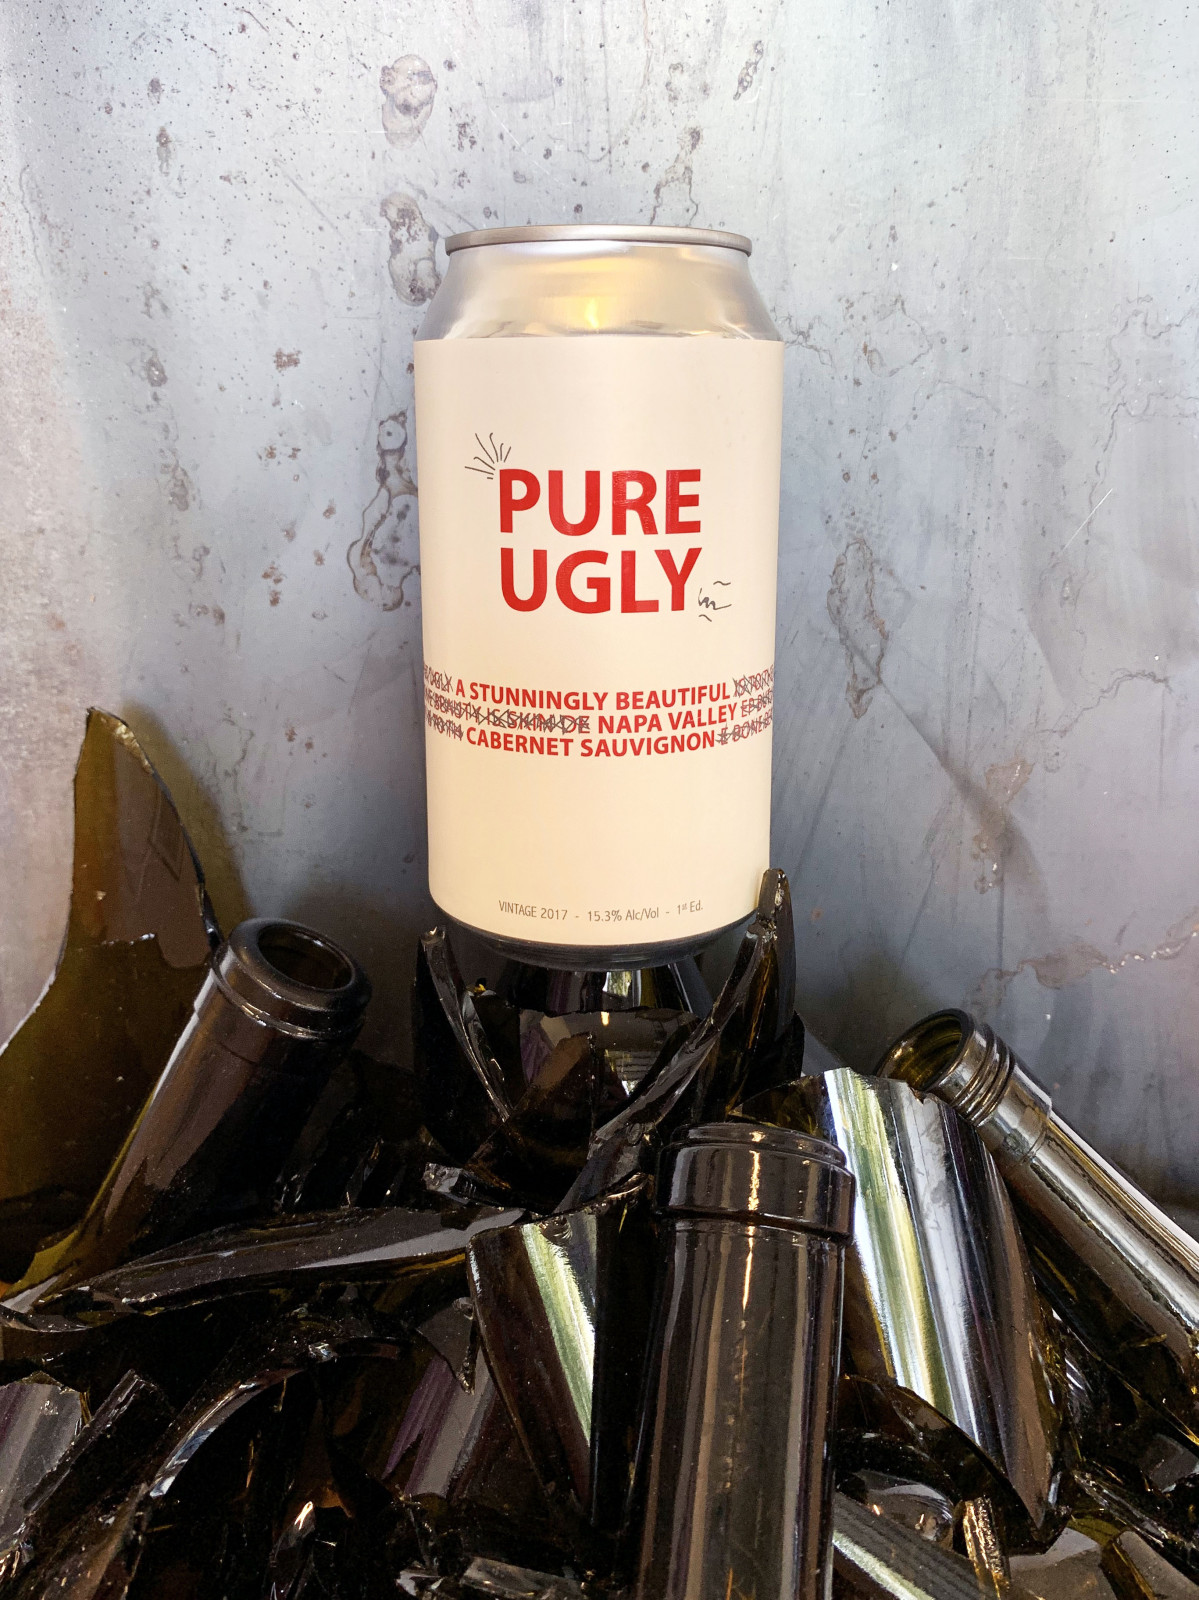 Pure Ugly 2017 Napa Valley Cabernet Sauvignon - Sample offer 2 x 375ml cans - Art+Farm Wine